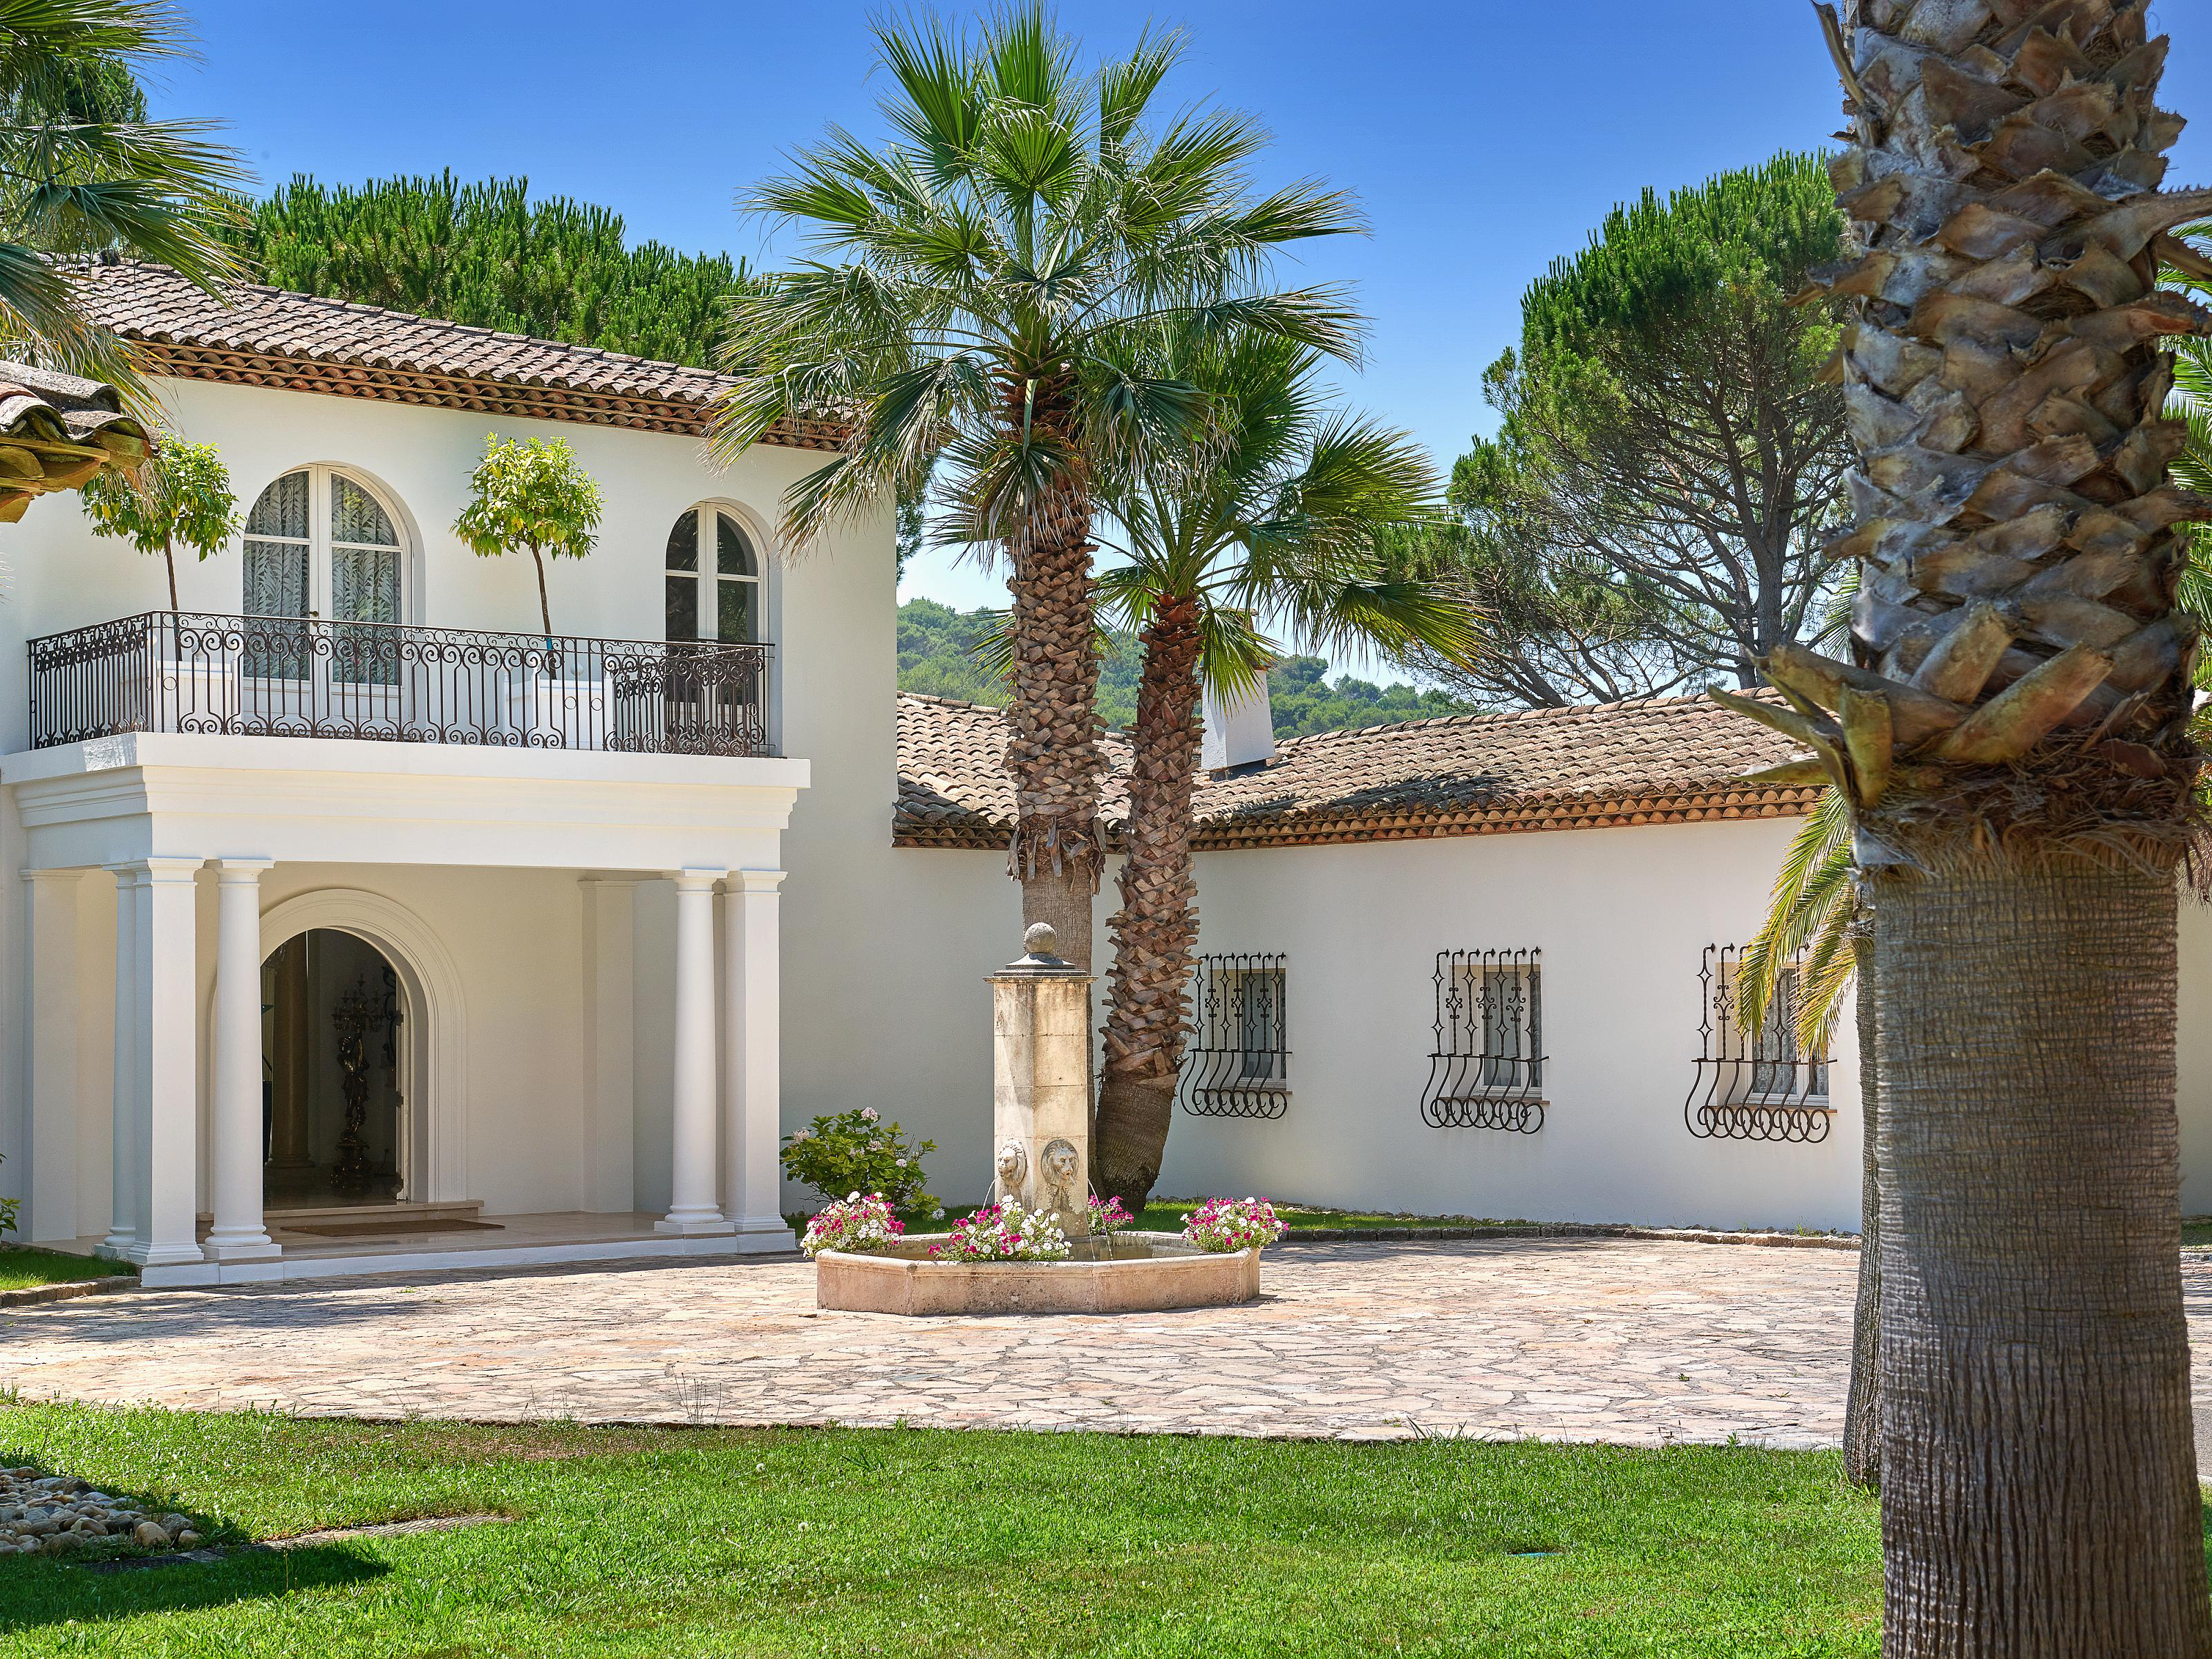 Single Family Home for Sale at Splendid Mediterranean villa with enchanting setting Mougins Mougins, Provence-Alpes-Cote D'Azur 06250 France